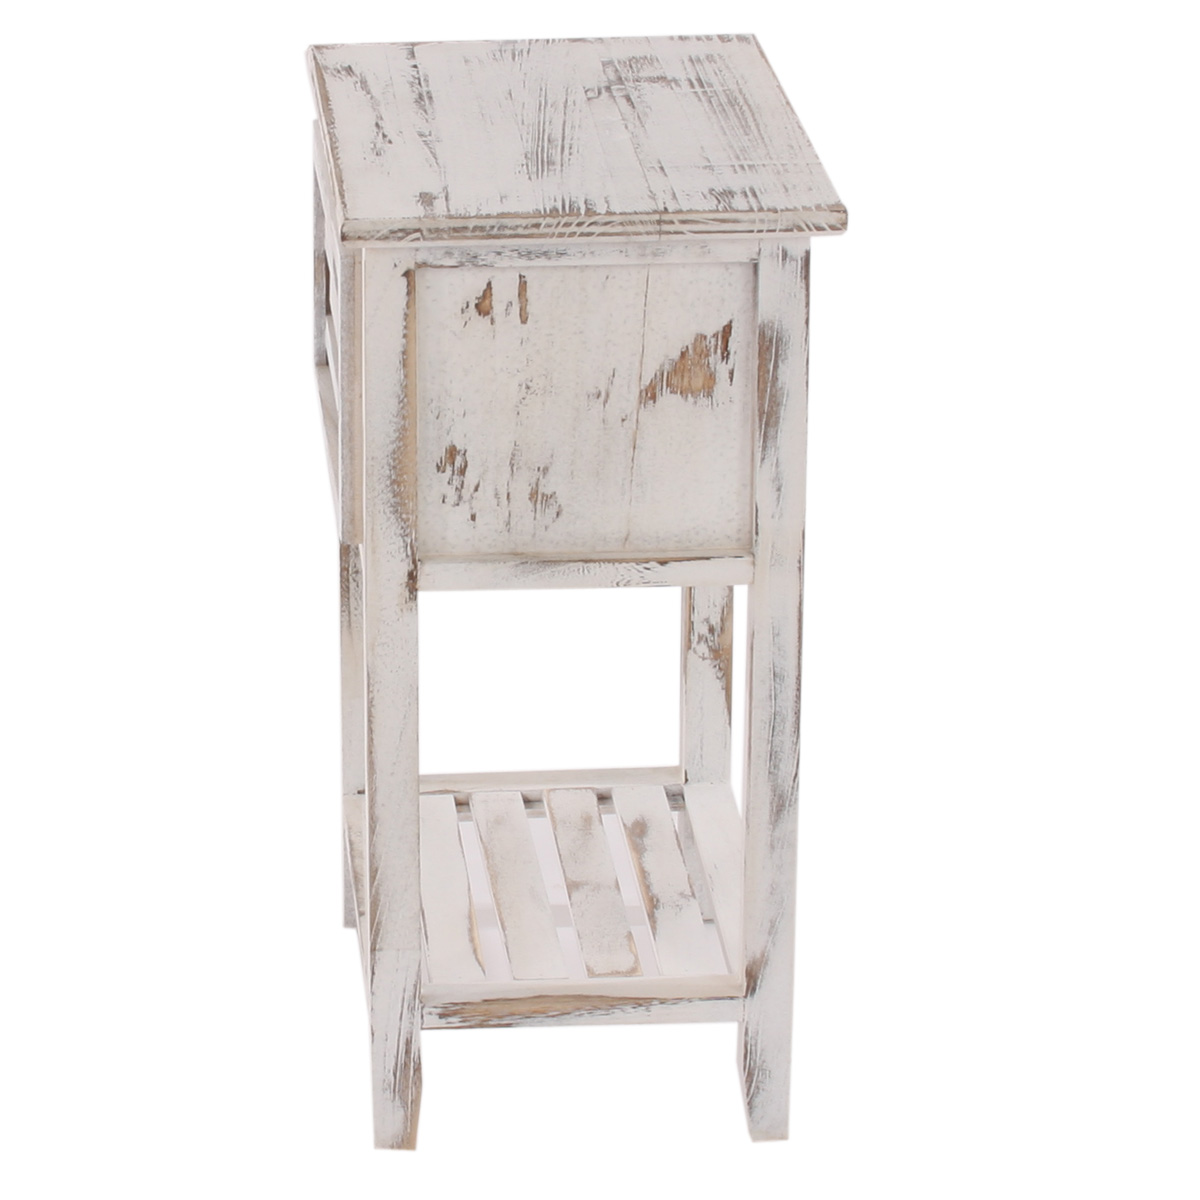 kommode beistelltisch telefontisch 57x35x27cm shabby look vintage wei. Black Bedroom Furniture Sets. Home Design Ideas